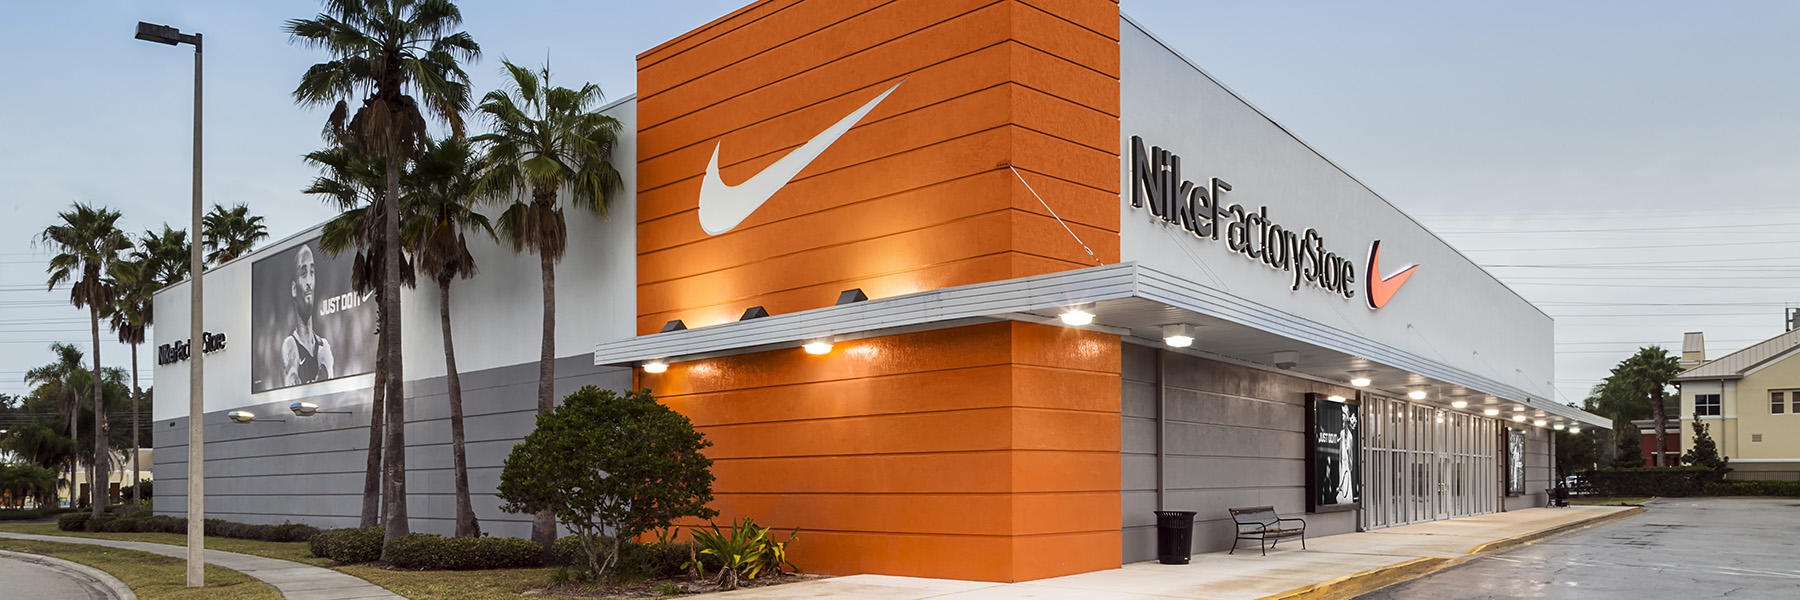 4424835e2fb212 Nike Factory Store - Celebration. Kissimmee